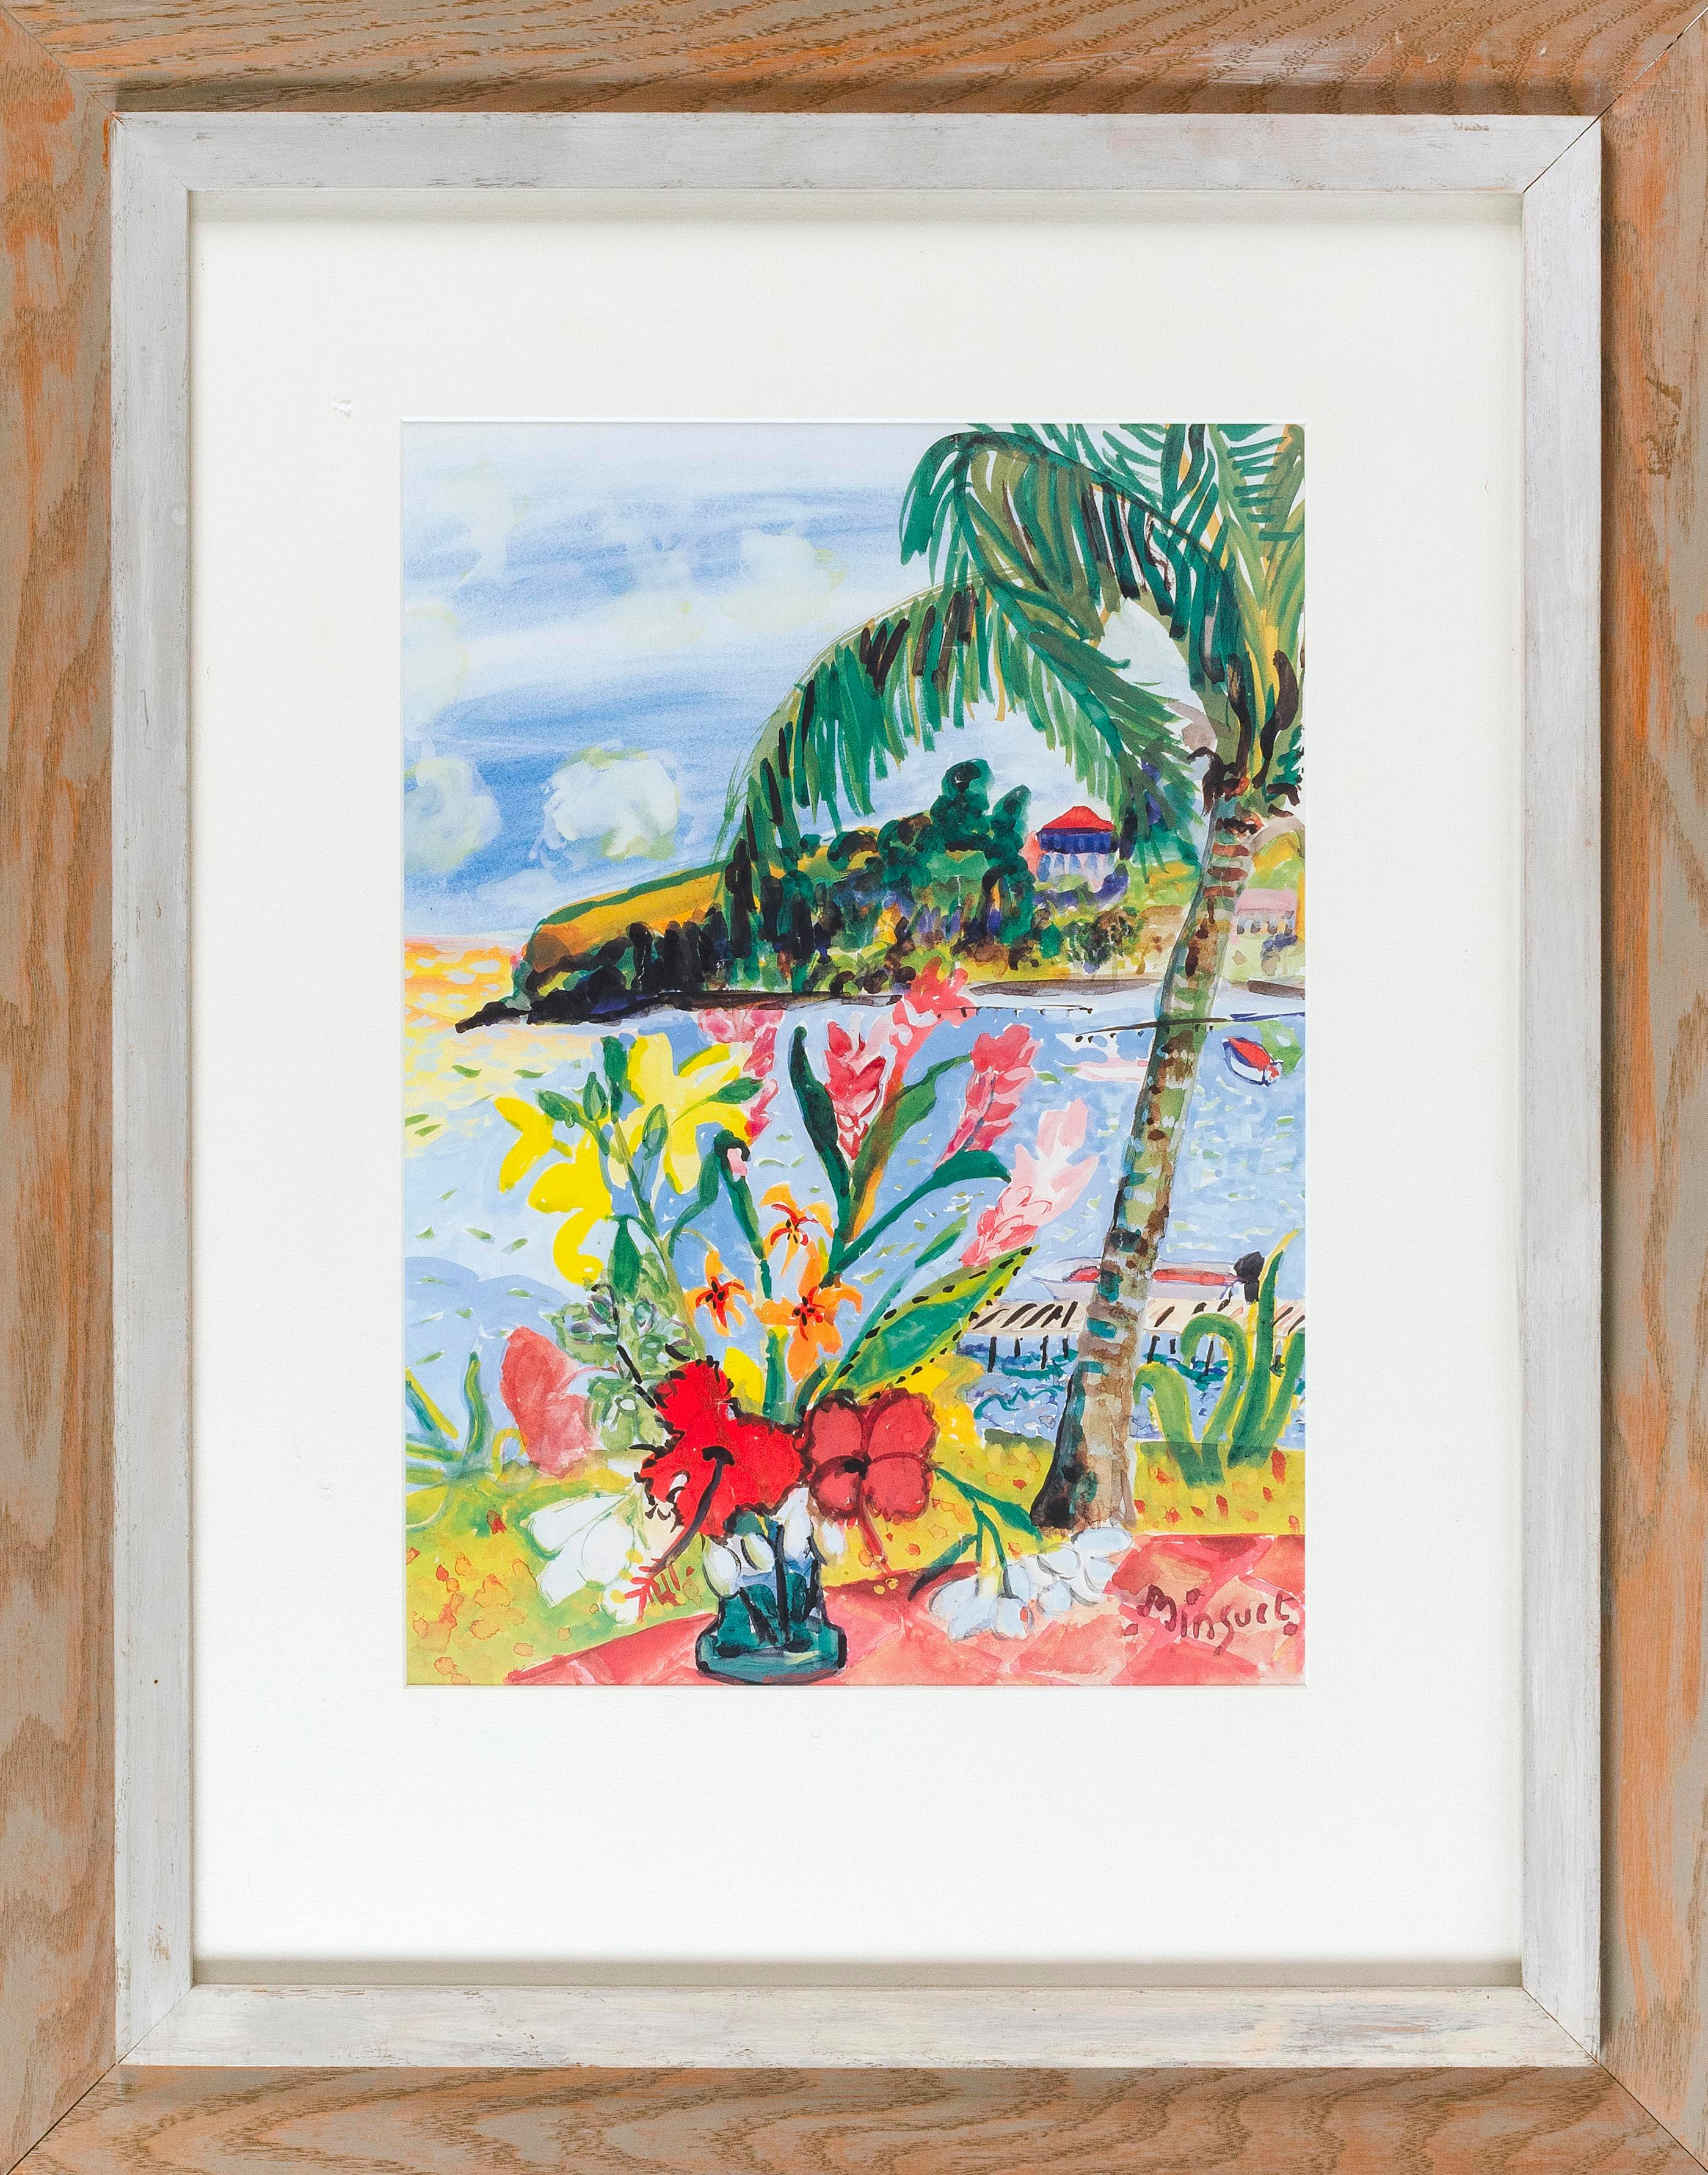 """TROPICAL LANDSCAPE MIXED MEDIA Signed lower right """"Minjuel"""". 17"""" x 12"""" sight. Framed 28.5"""" x 22.5""""."""